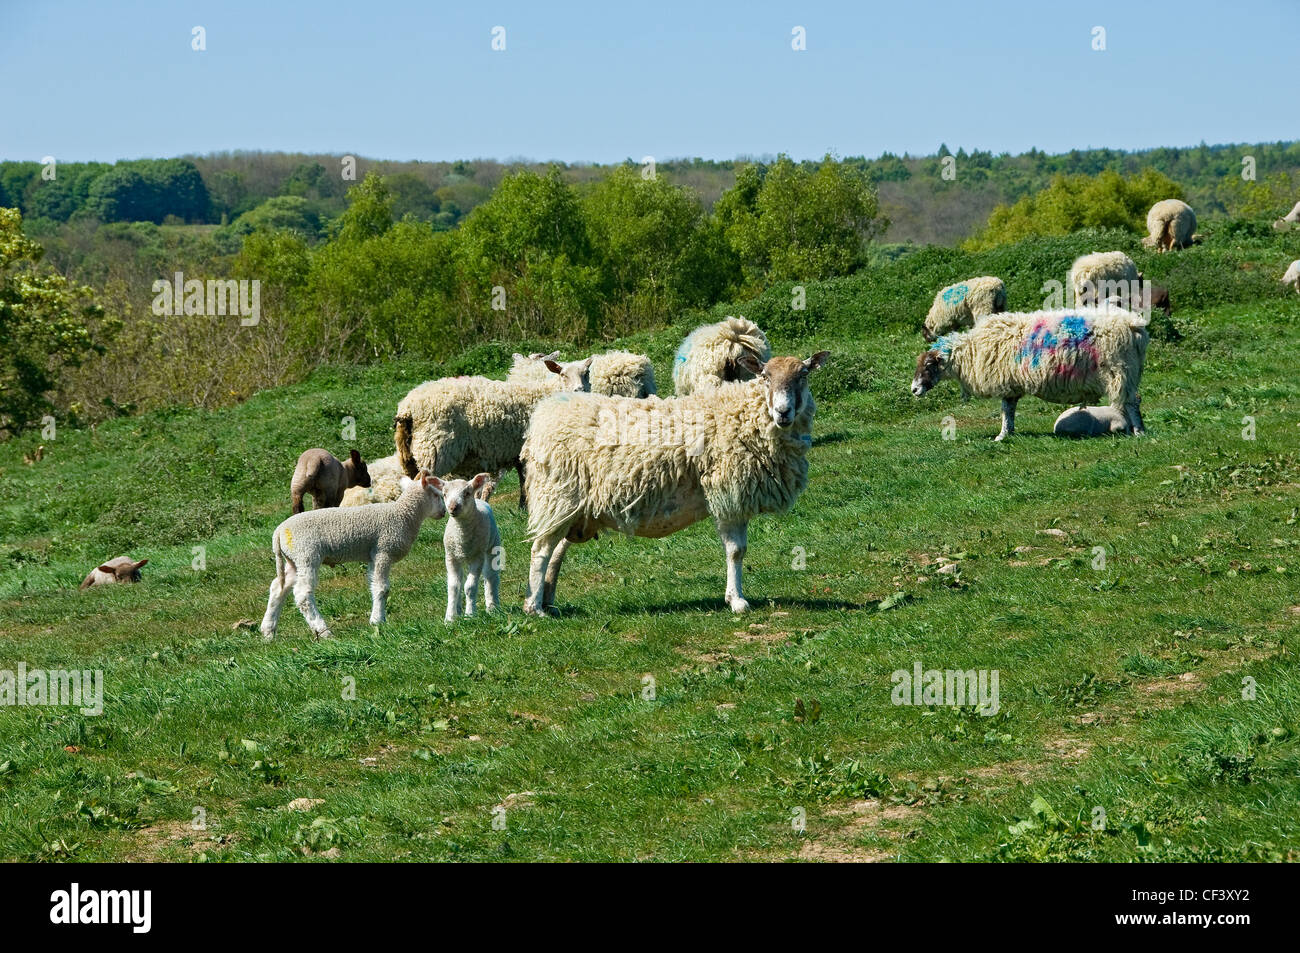 Ewes and lambs in spring. - Stock Image